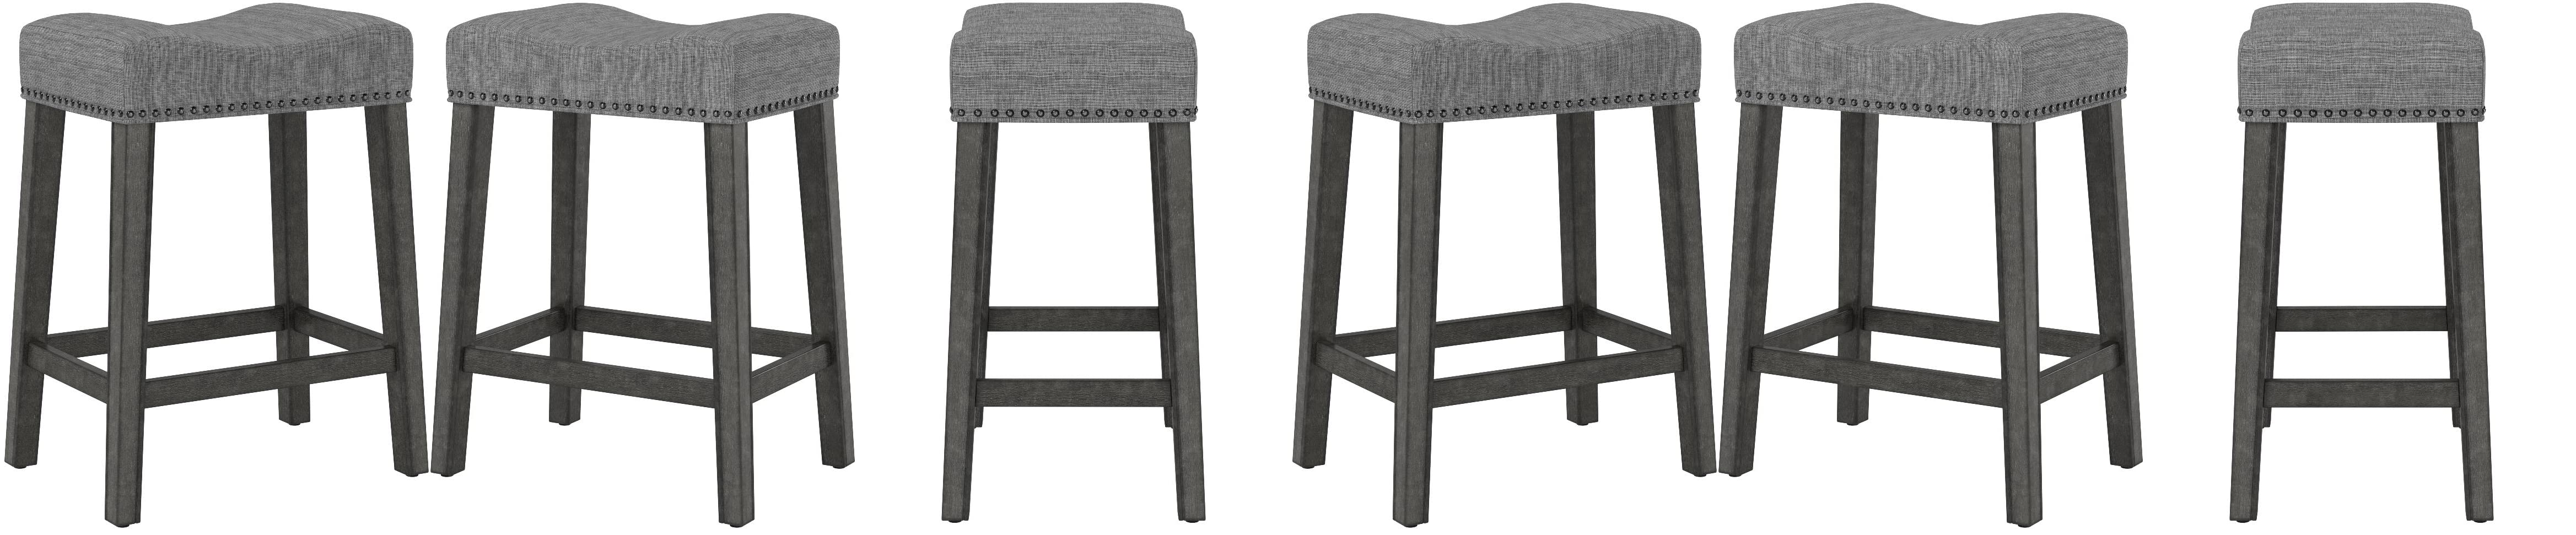 Amazon Com Roundhill Furniture Coco Upholstered Backless Saddle Seat Counter Stools 24 Height Set Of 2 Gray Furniture Decor